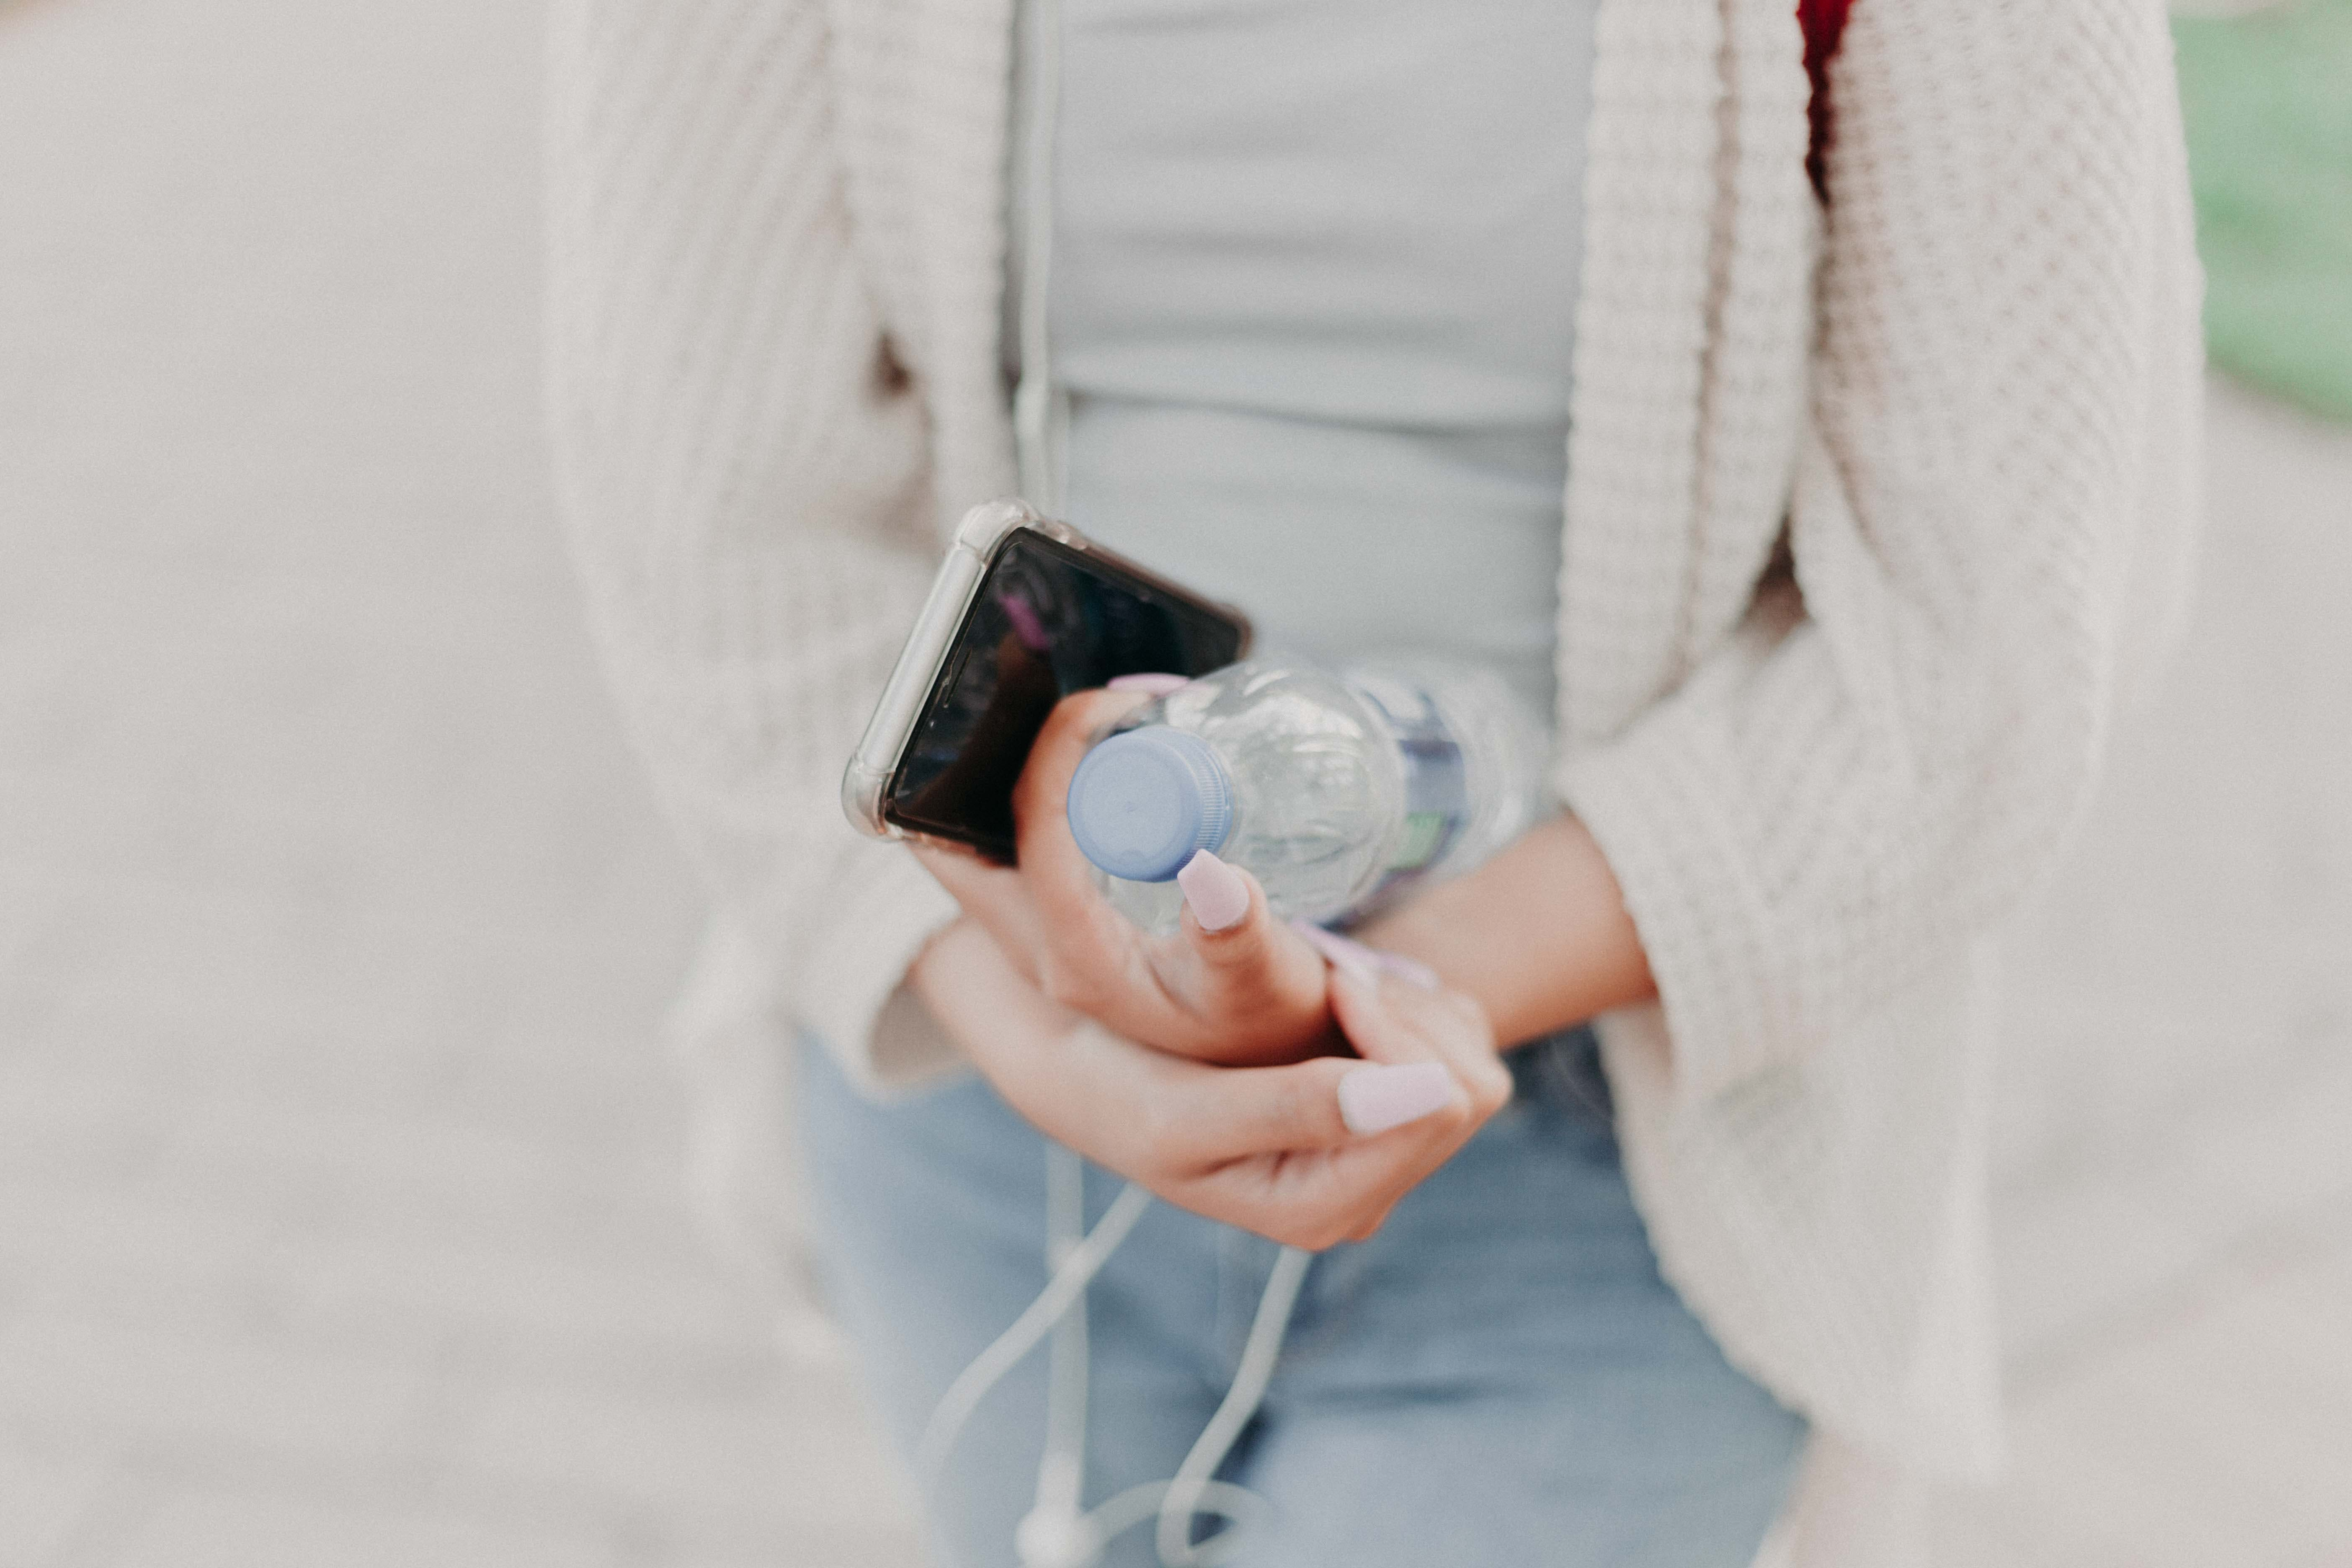 Selective Focus Photography of Woman in White Cardigan Holding Water Bottle and Black Smartphone